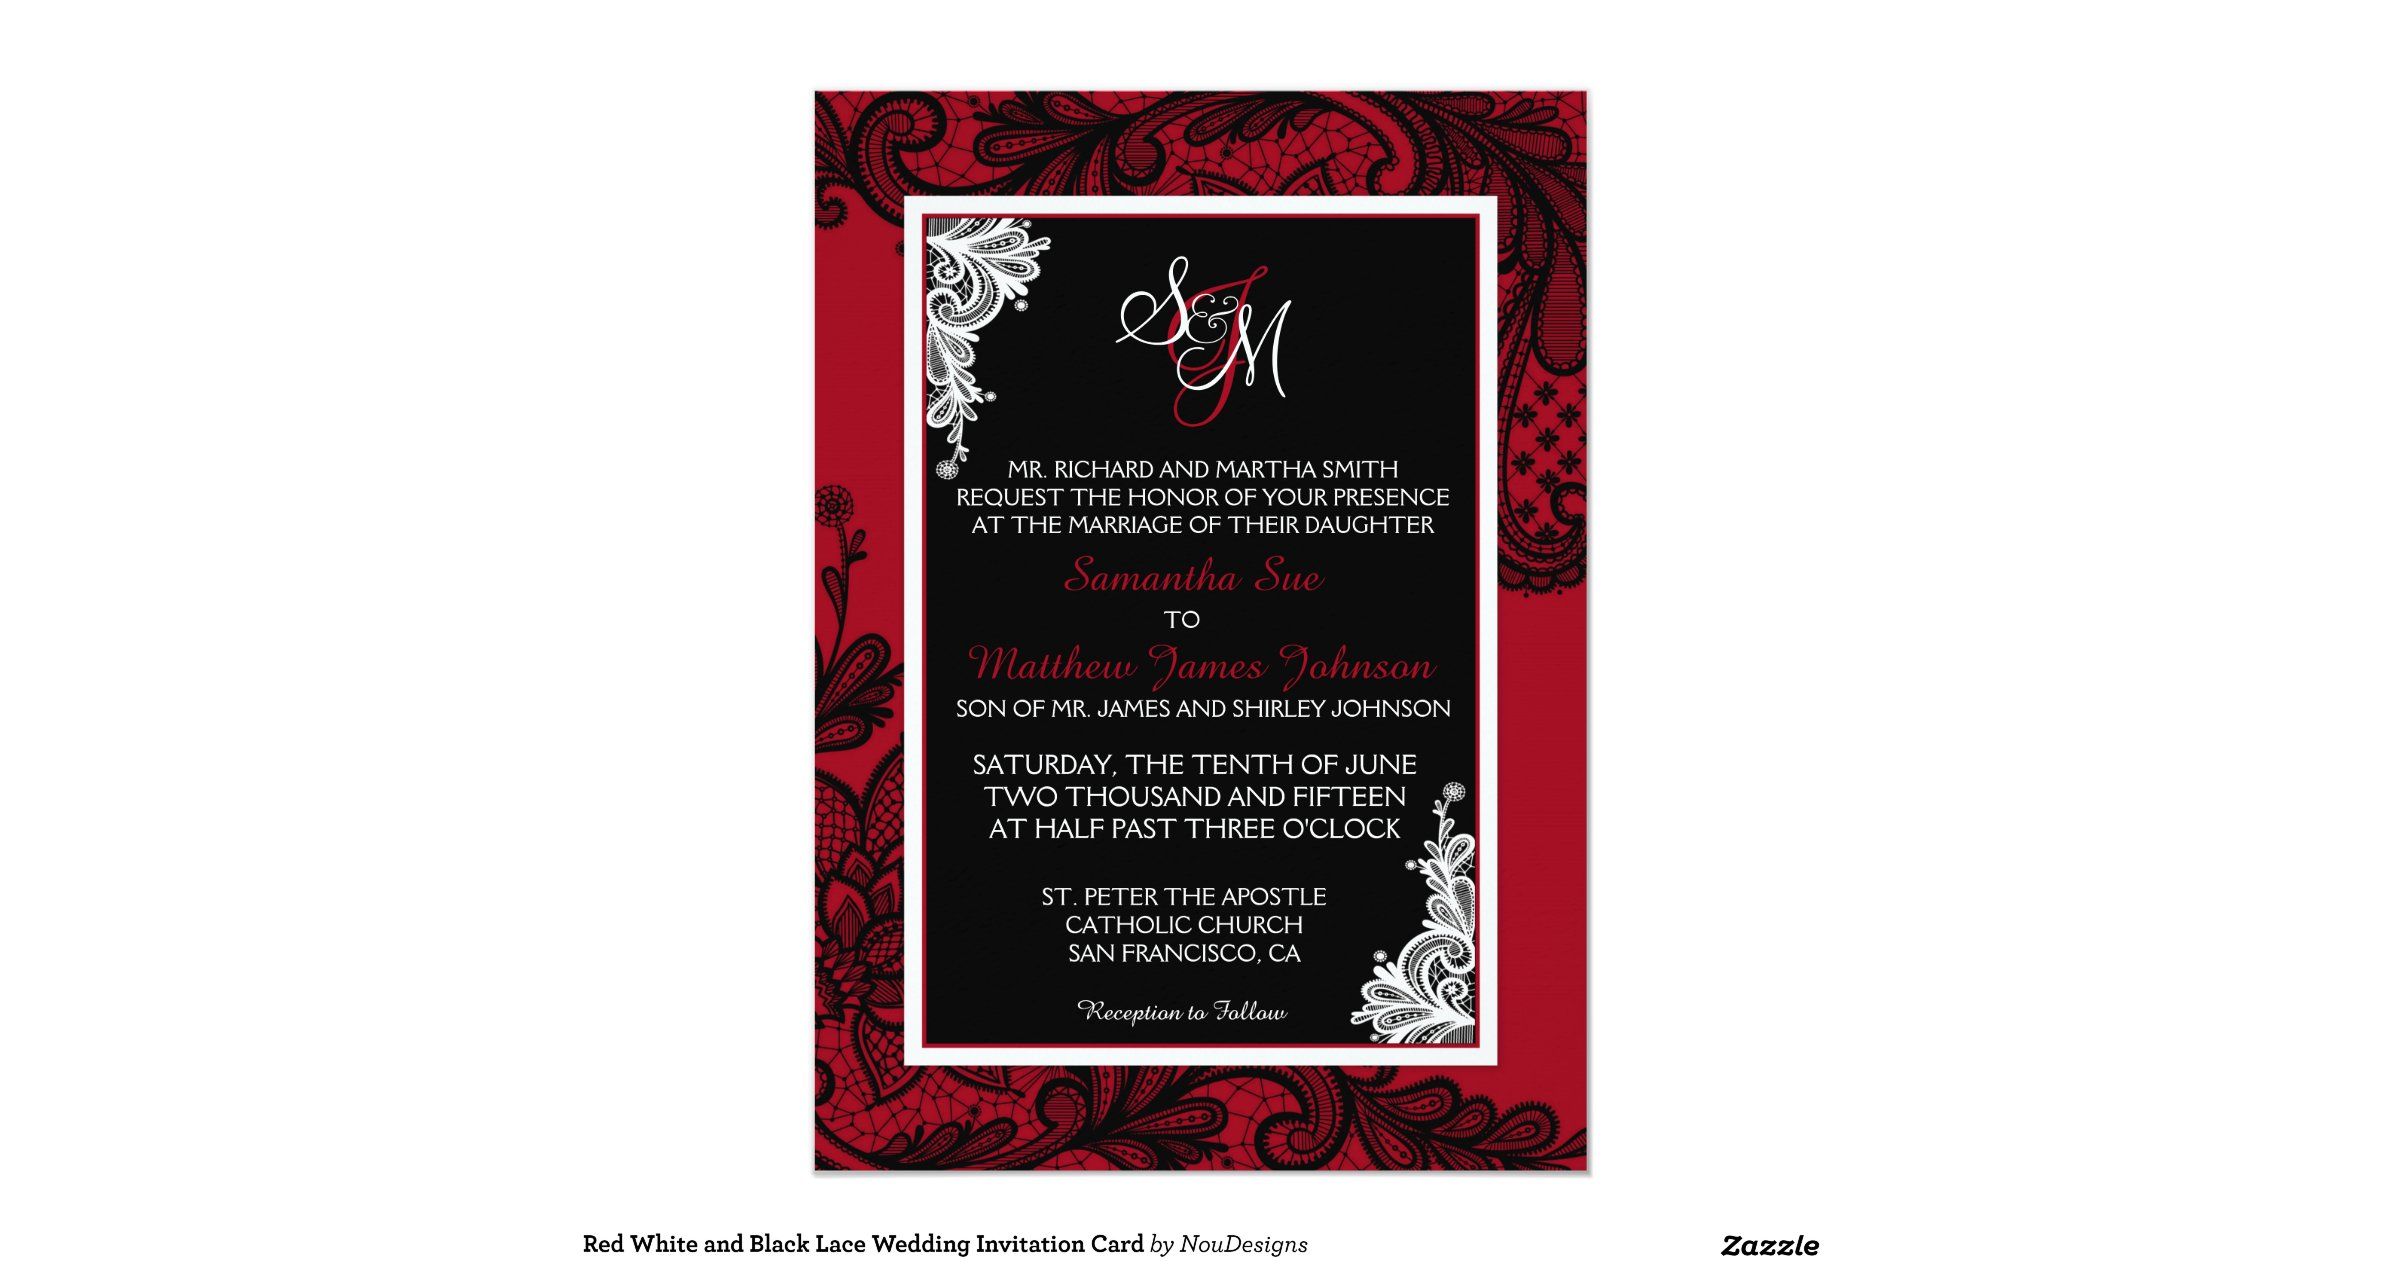 Red White And Black Lace Wedding Invitation Card Rb7ed85480ca44647aee64473bace0664 Zkrqs 1200